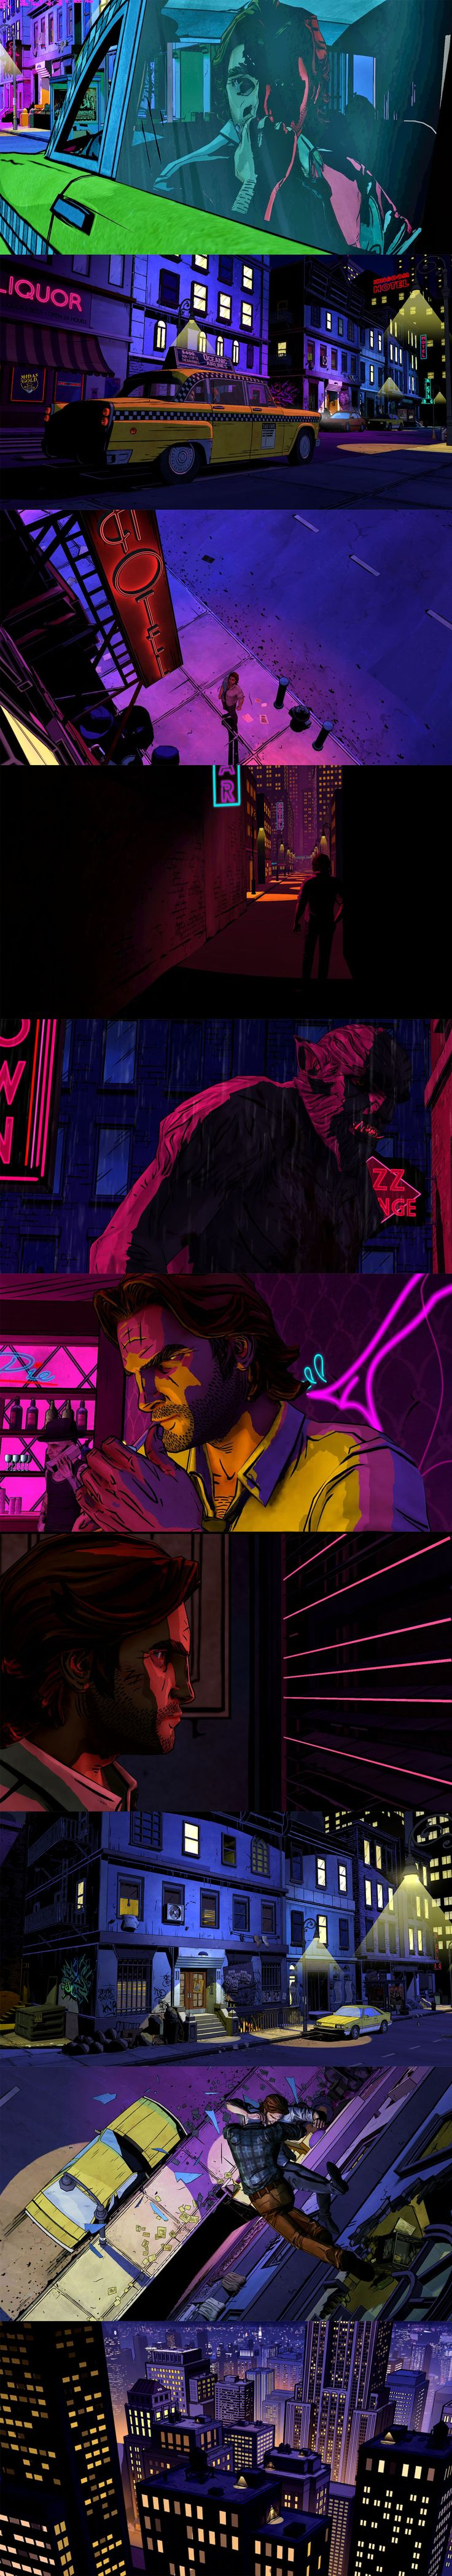 """The Wolf Among Us"" - an episodic graphic adventure video game based on Bill Willingham's comic book series 'Fables'."